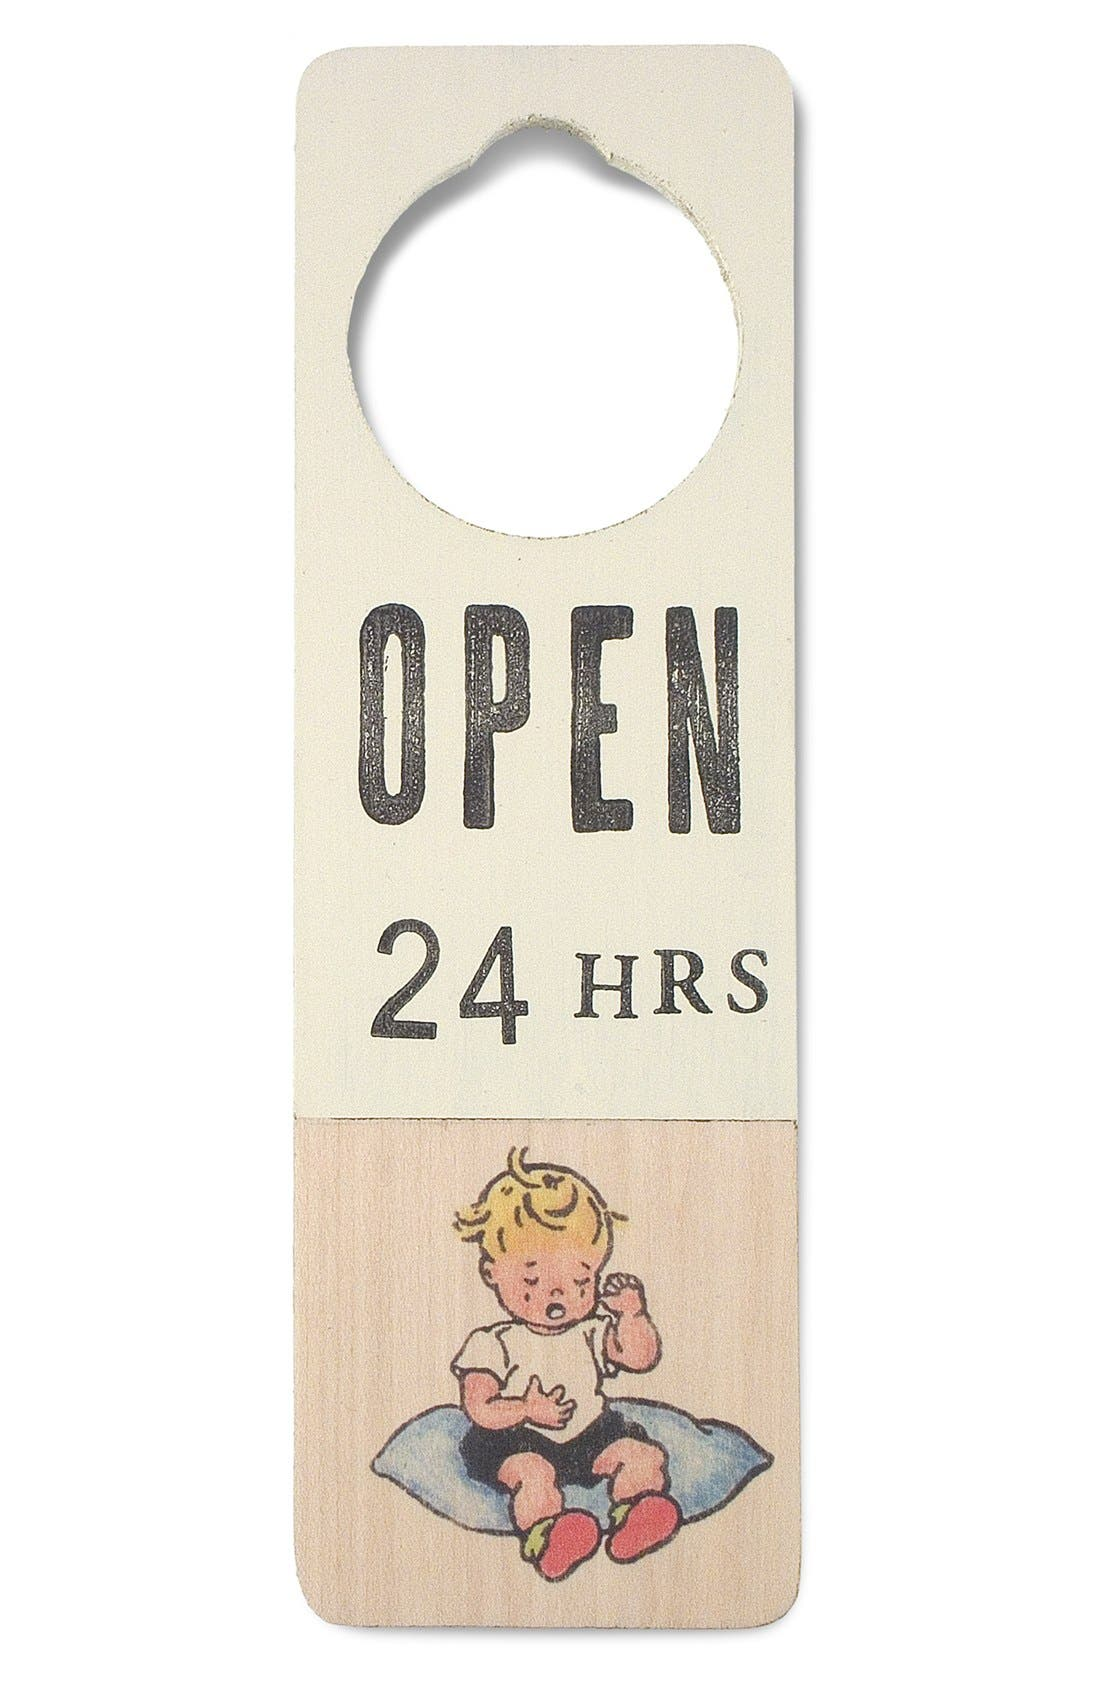 Alternate Image 1 Selected - Tree by Kerri Lee 'Open 24 Hrs' Doorknob Sign